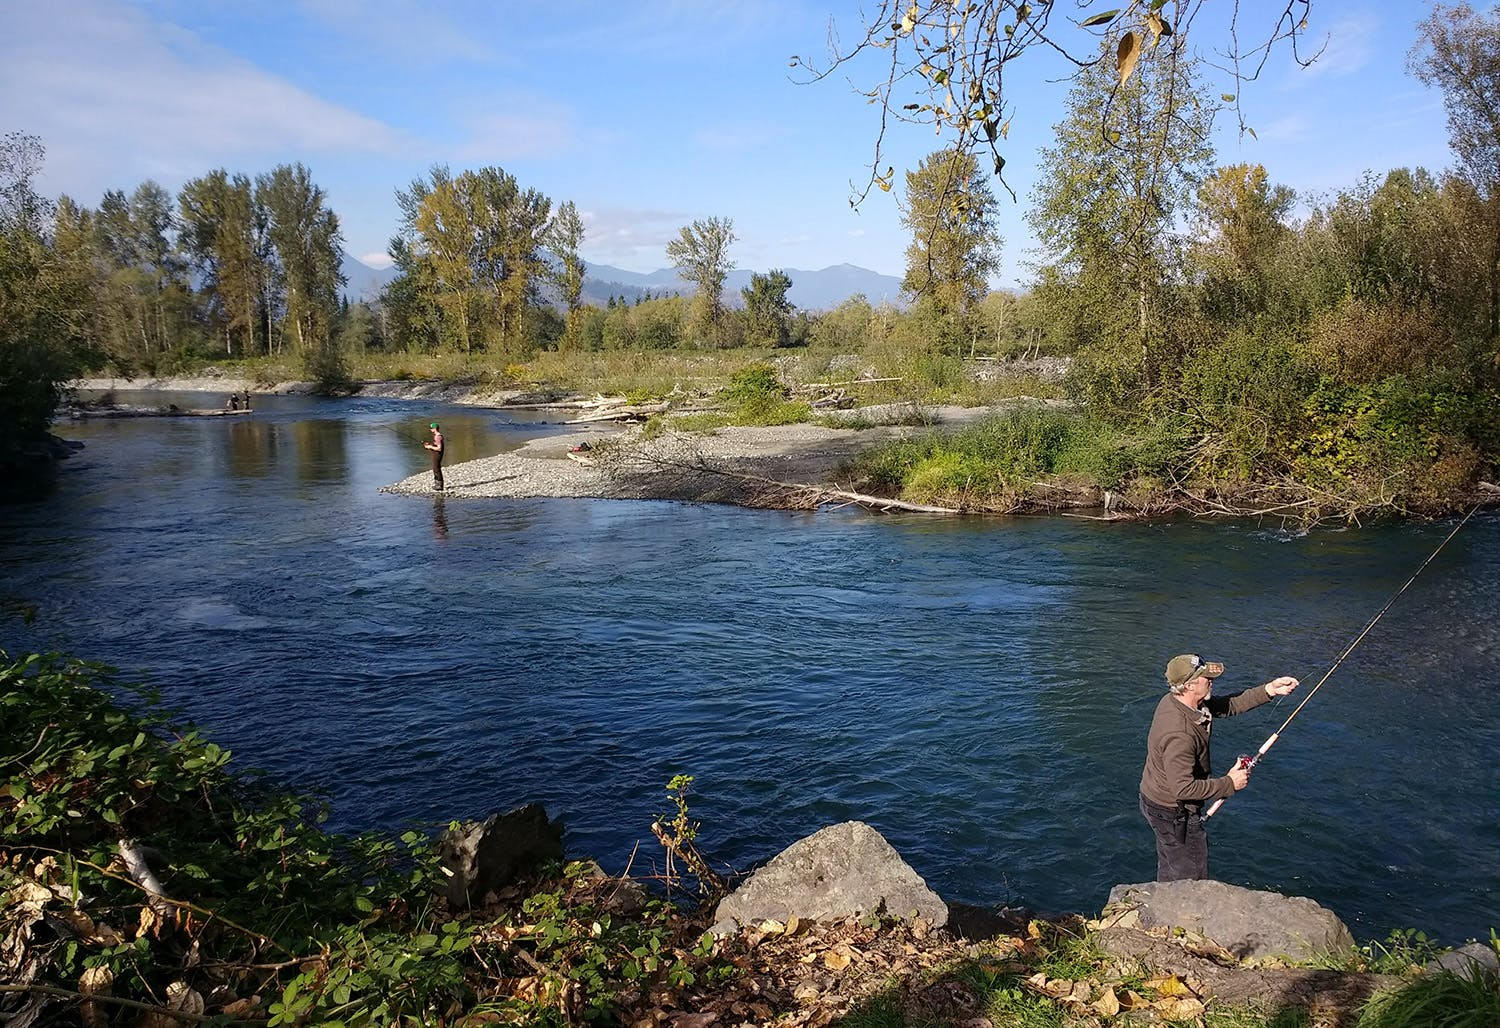 Two people fish in the Vedder River